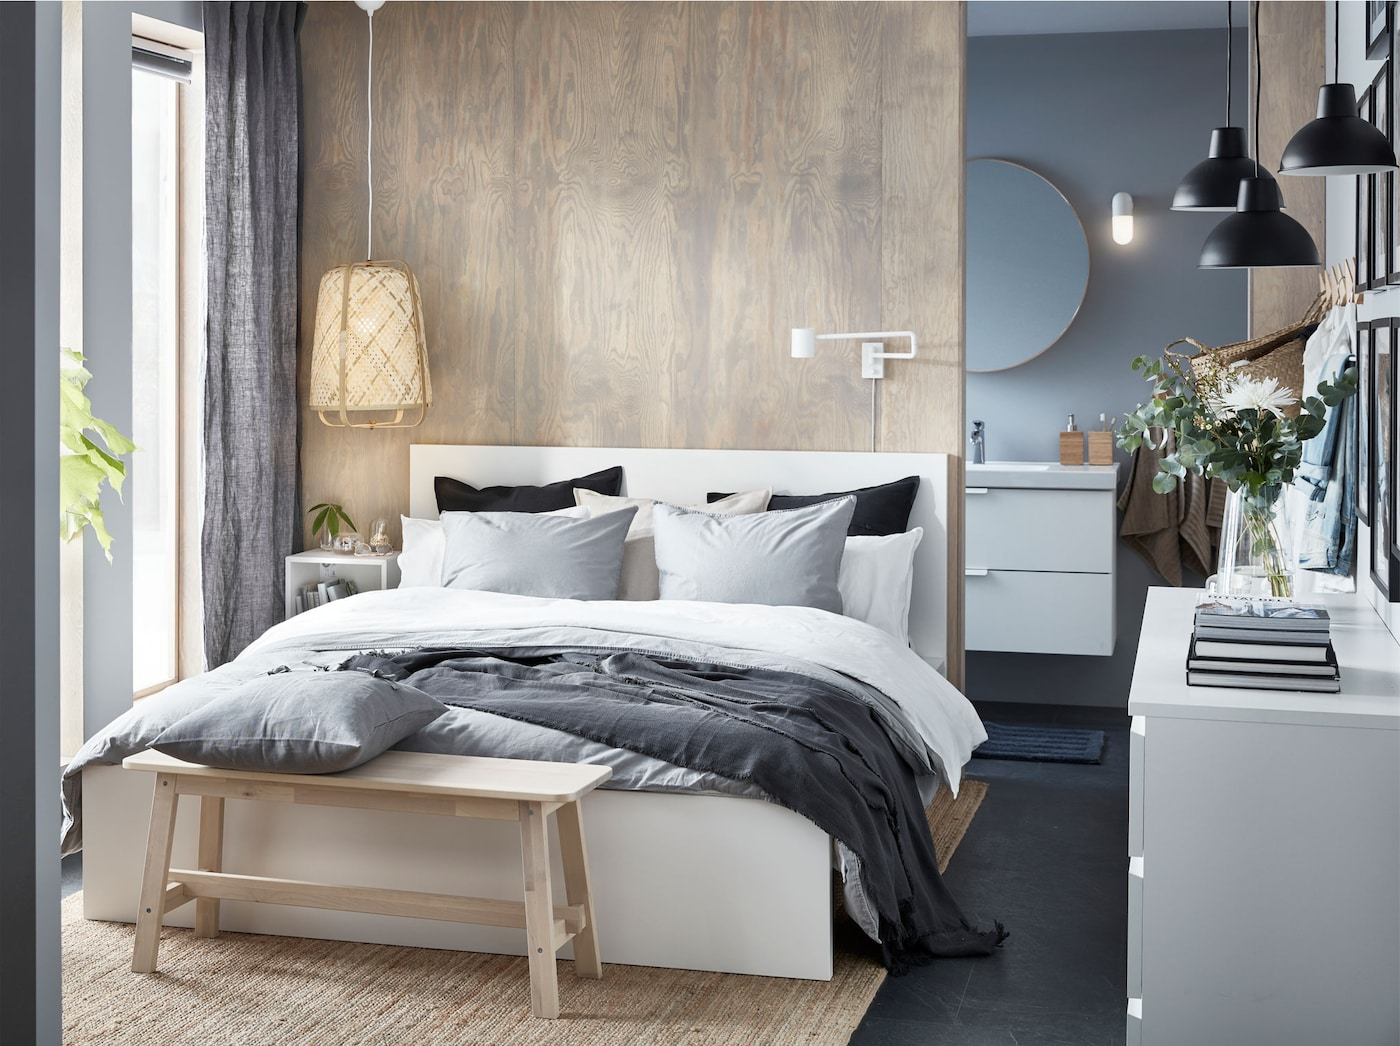 Pictures of Meuble Ikea Chambre Adulte